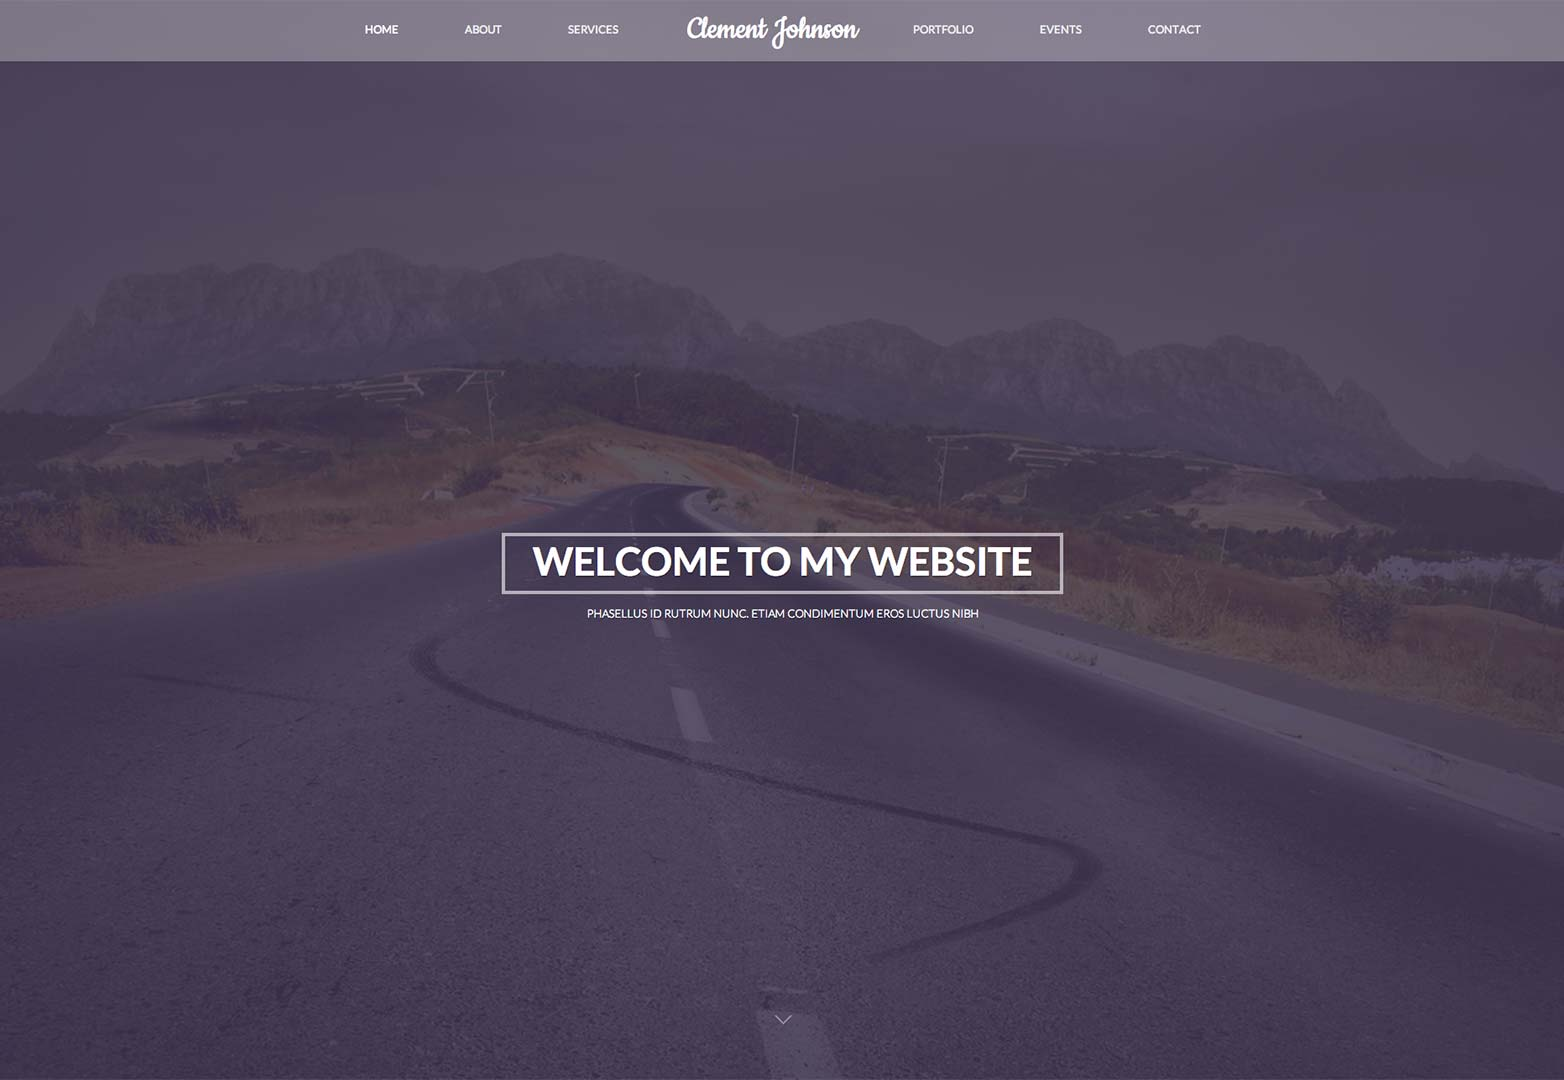 Deal Of The Week Premium Responsive Onepage HTML Templates - Html welcome page template